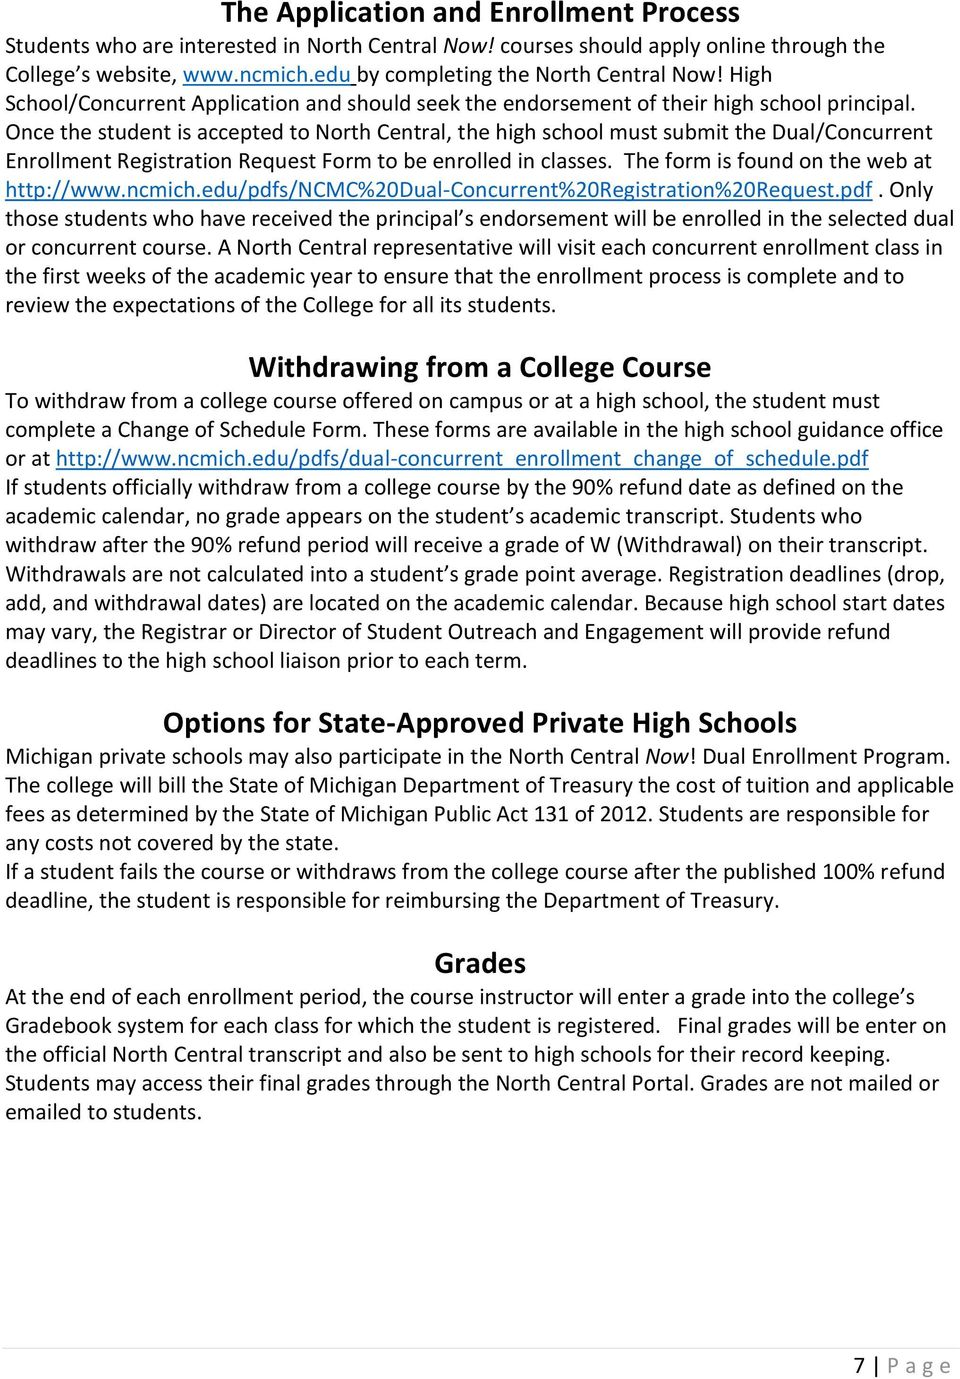 Once the student is accepted to North Central, the high school must submit the Dual/Concurrent Enrollment Registration Request Form to be enrolled in classes.